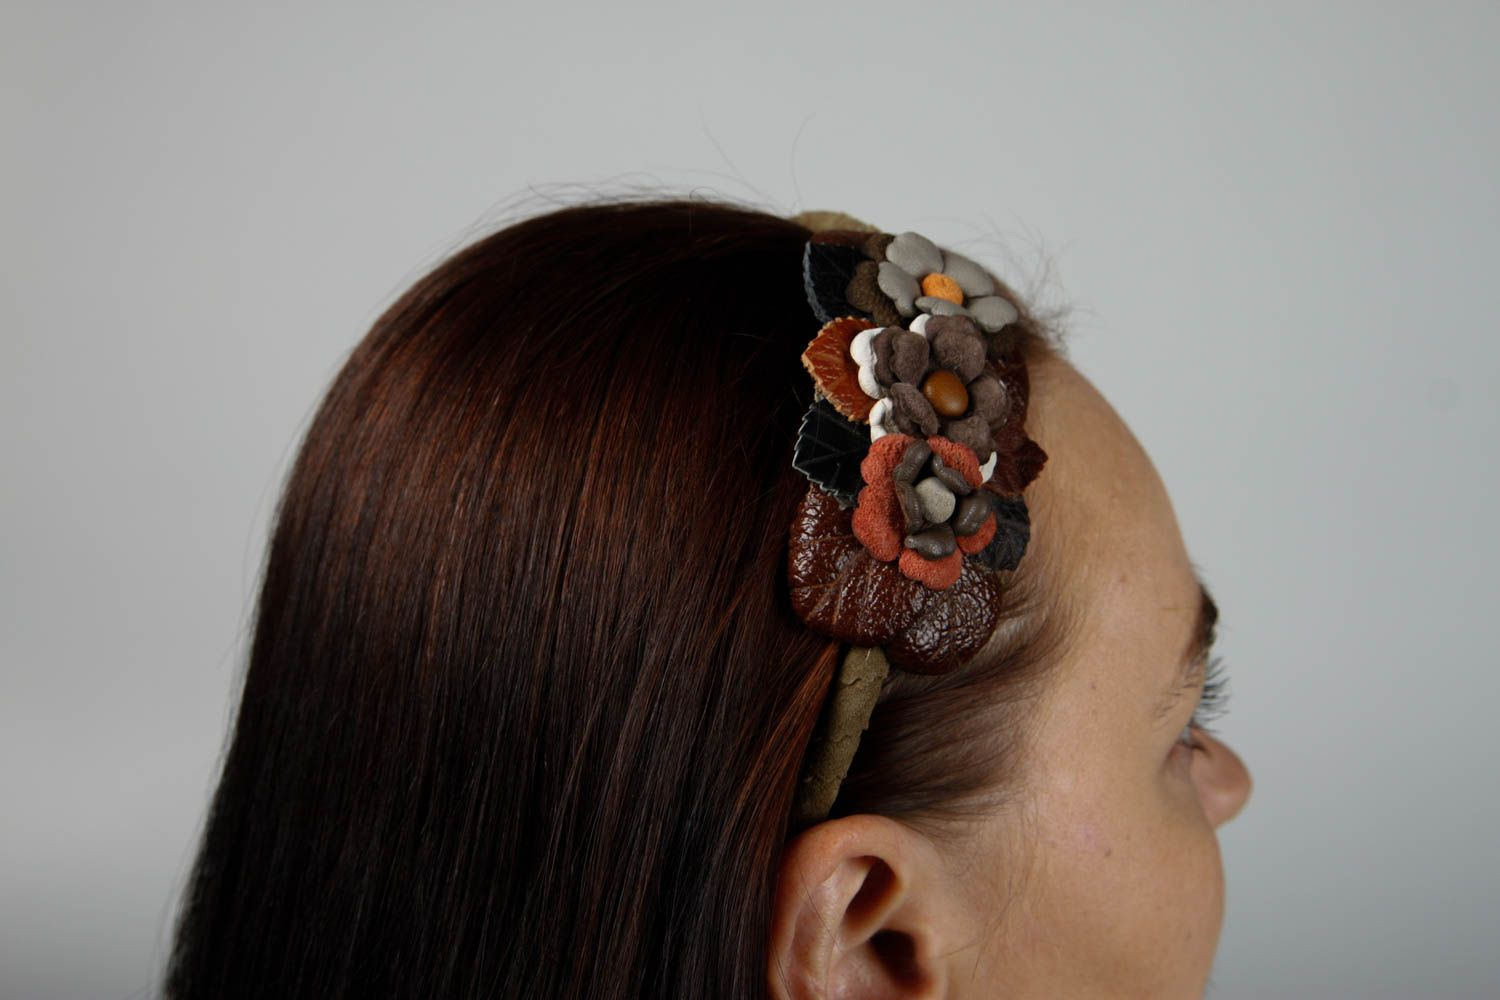 Stylish handmade leather headband hair bands trendy hair gifts for her photo 2